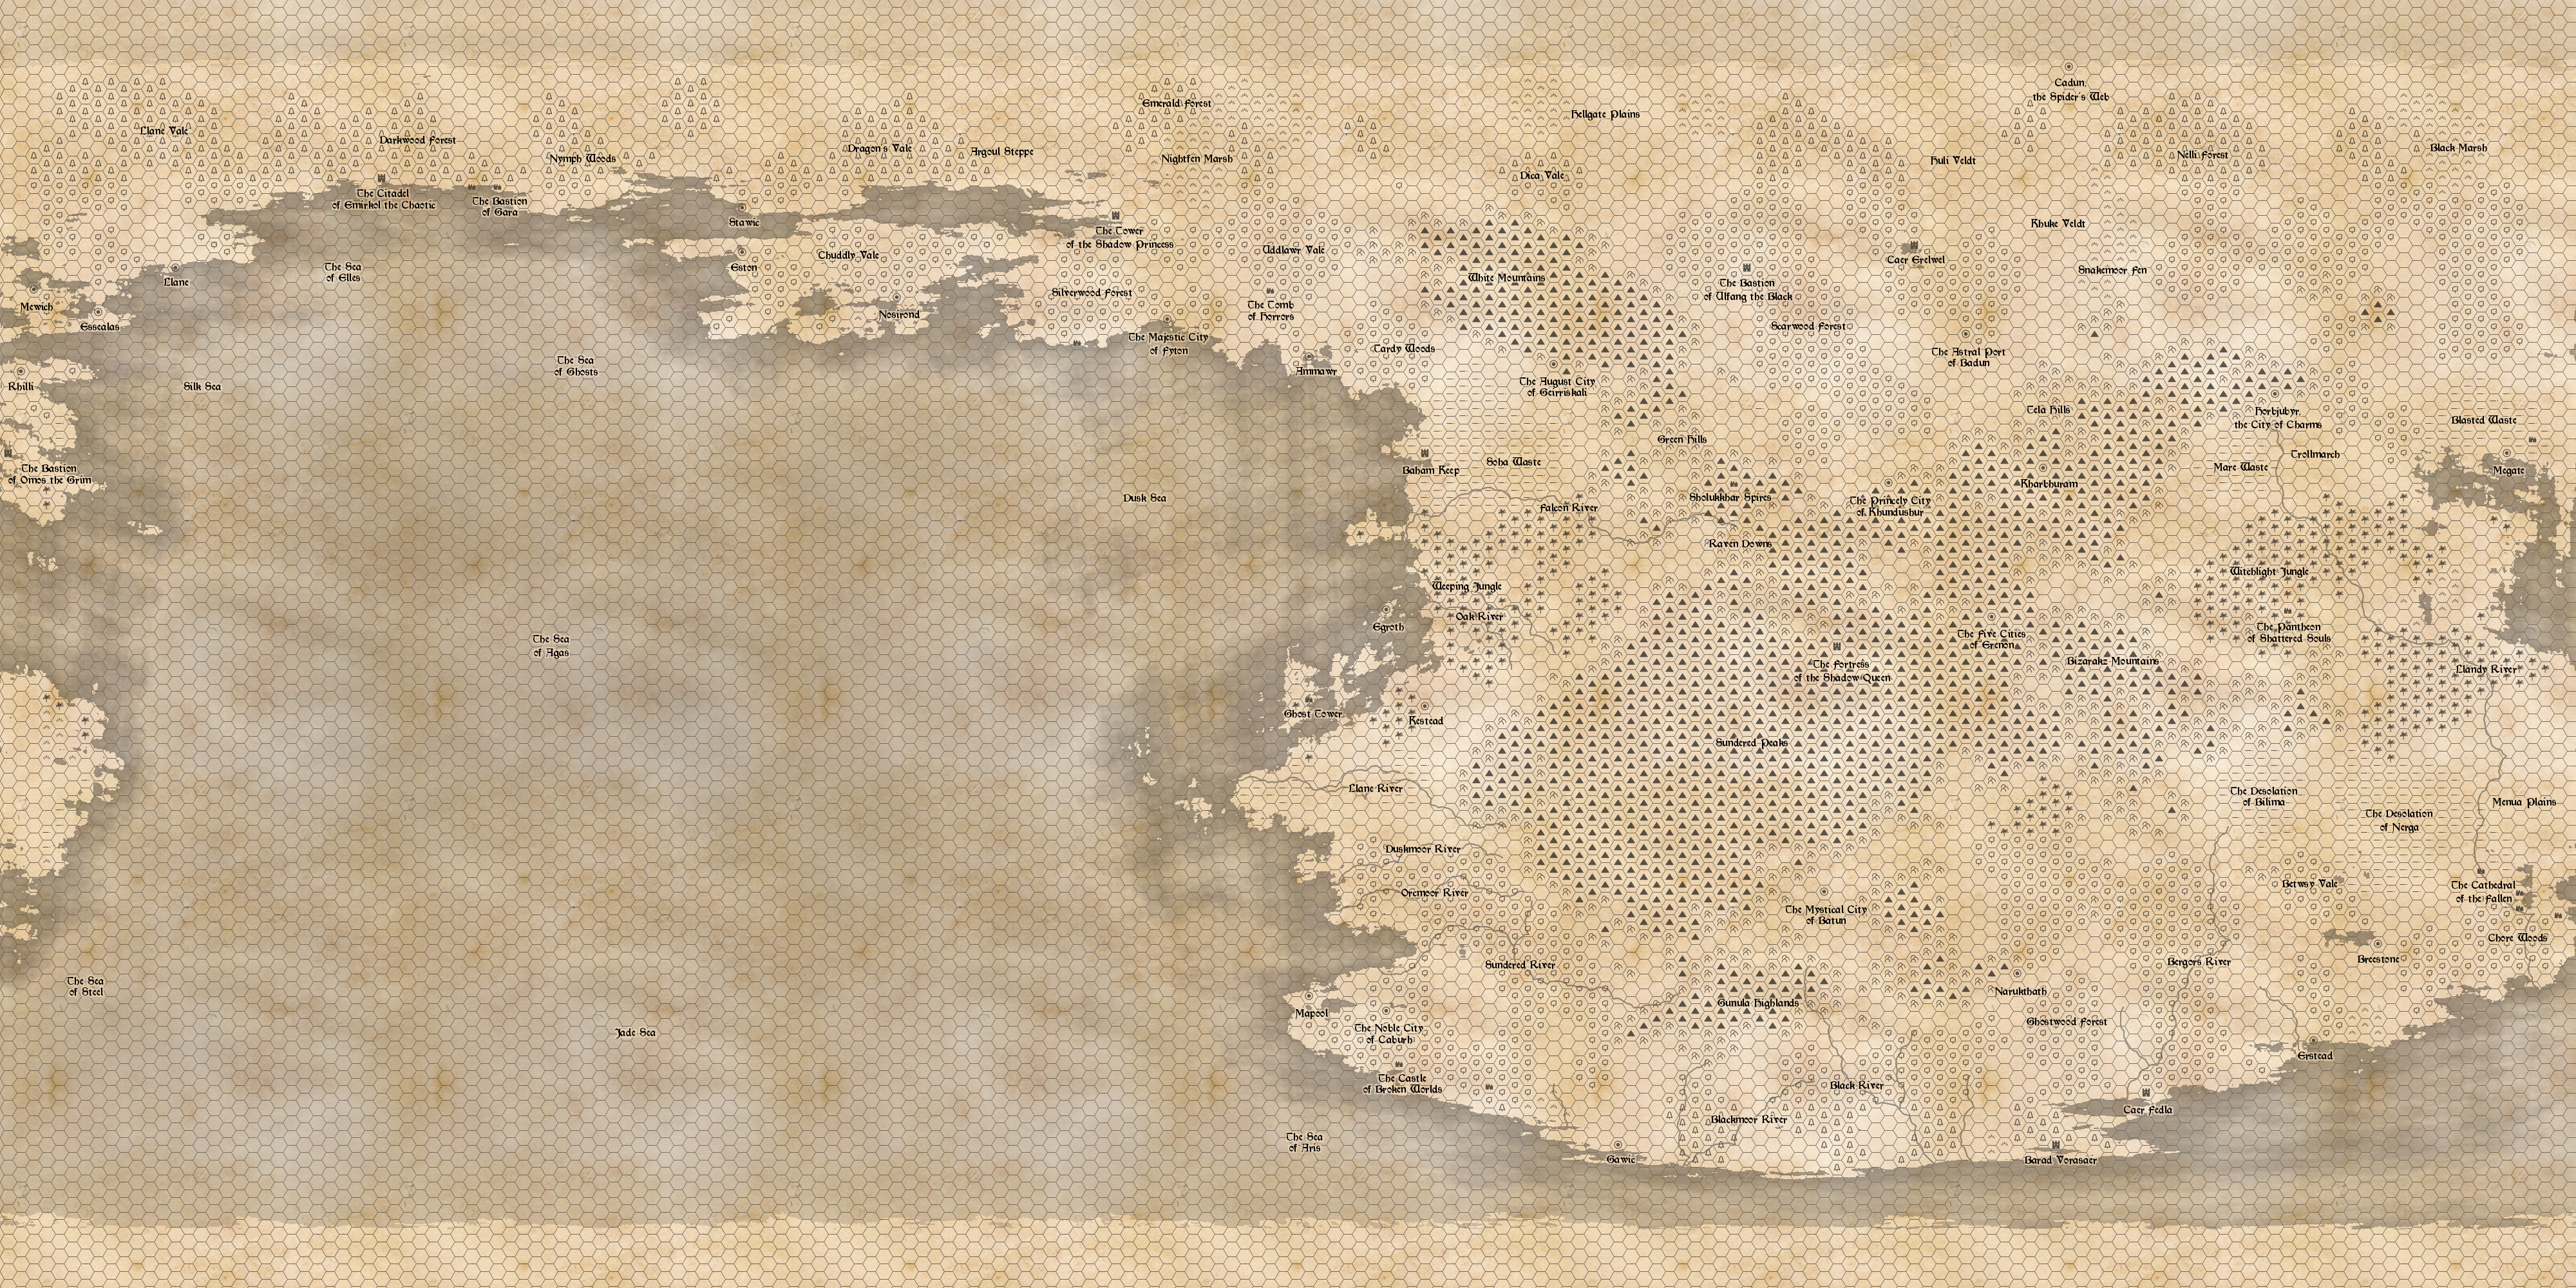 Donjon thimeria personal fantasy world map made with a donjon thimeria personal fantasy world map made with a generator this is epic gumiabroncs Gallery